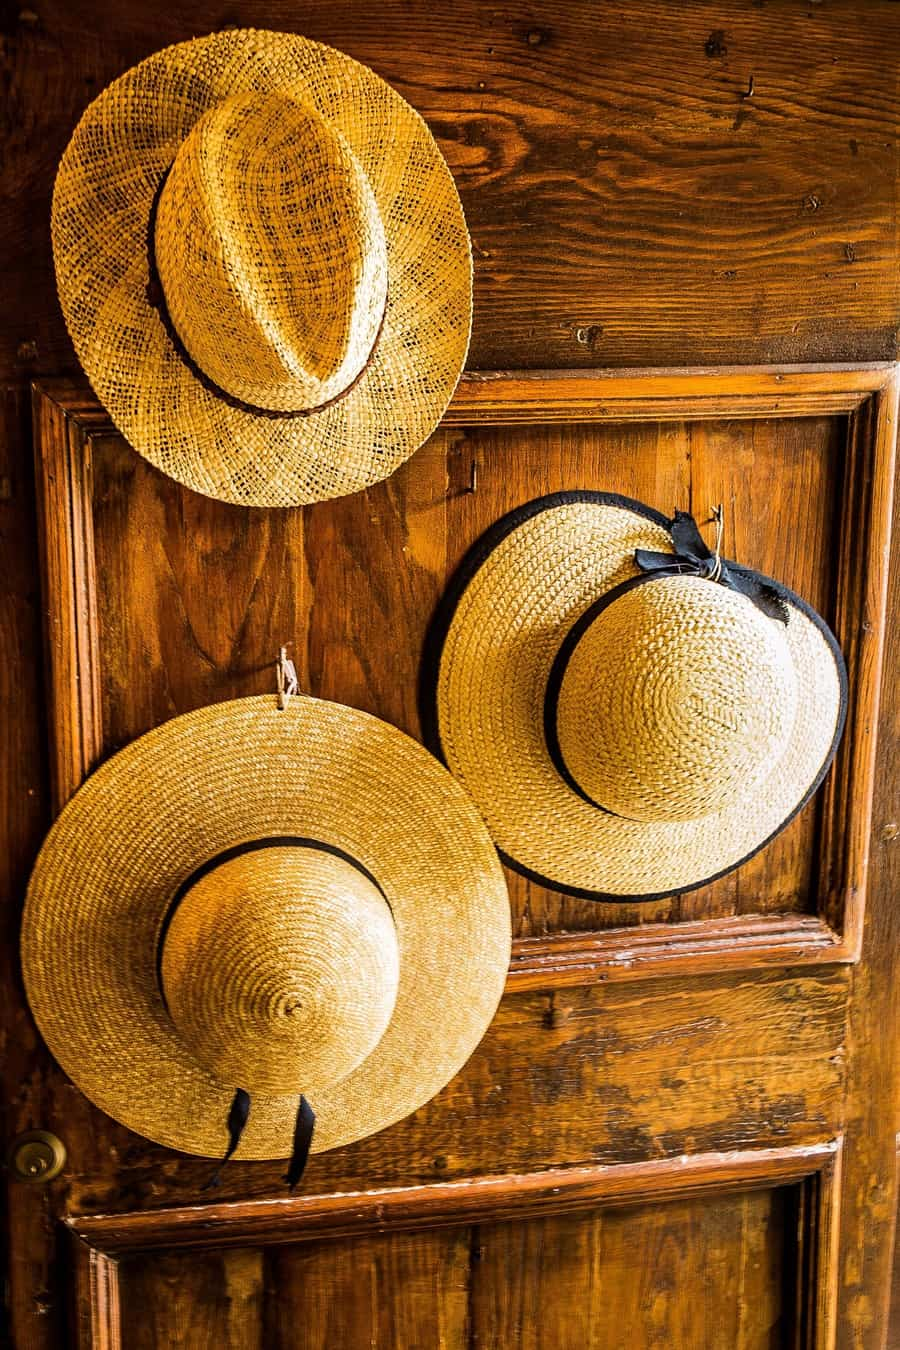 Hats on a door, Italy by Rick McEvoy travel photographer